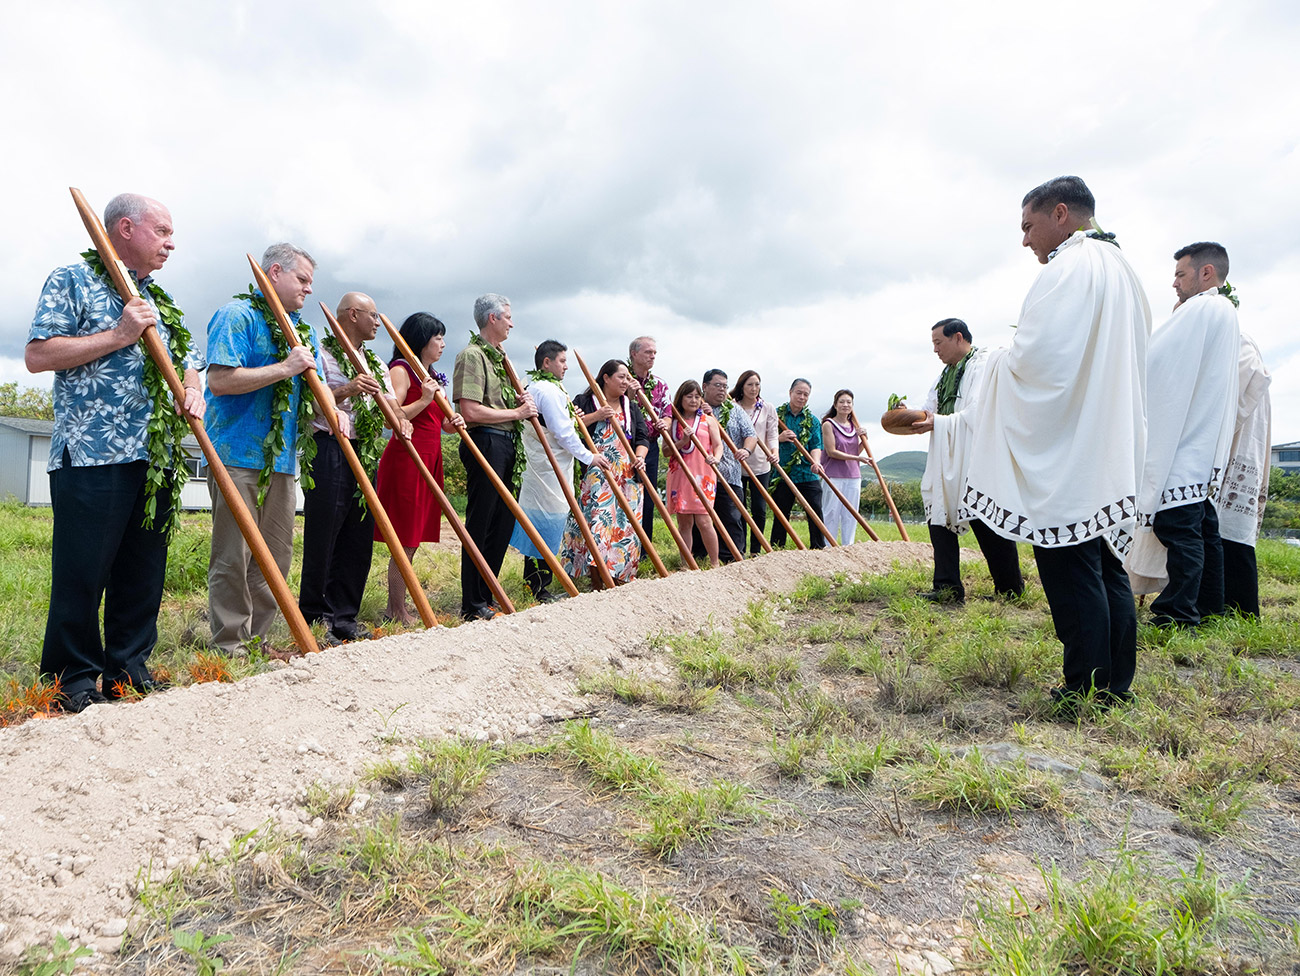 Groundbreaking ceremony prayer